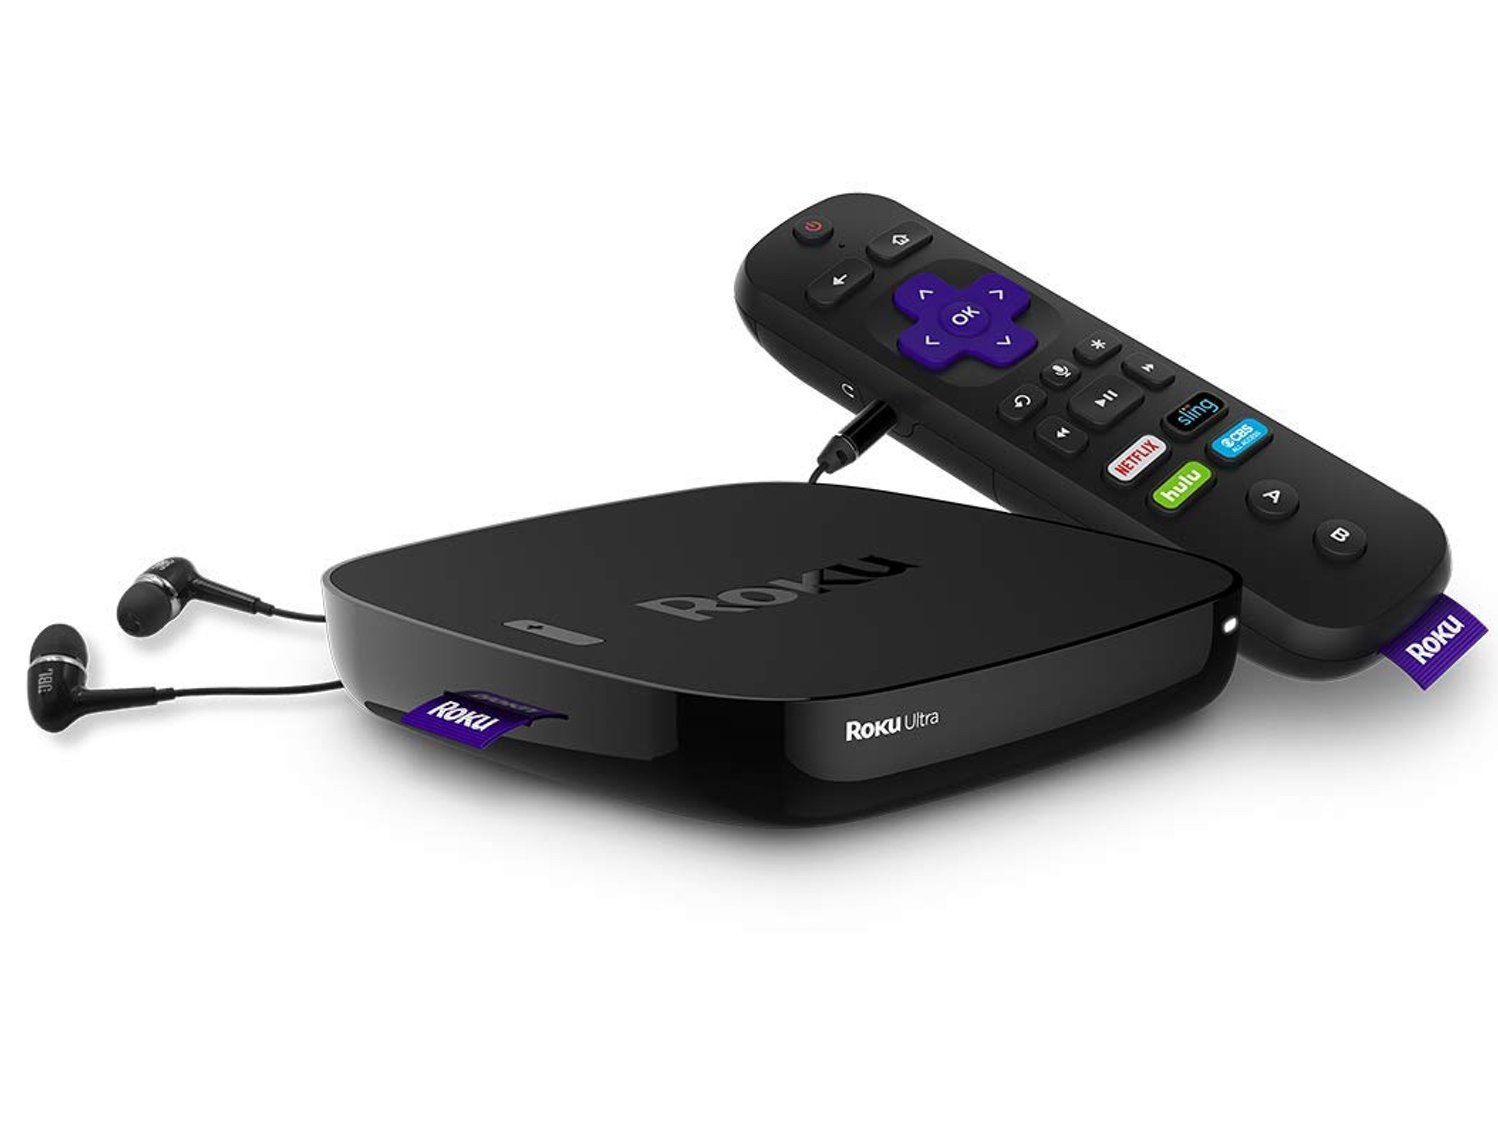 Roku Ultra Express hot mothers day gift ideas 2019